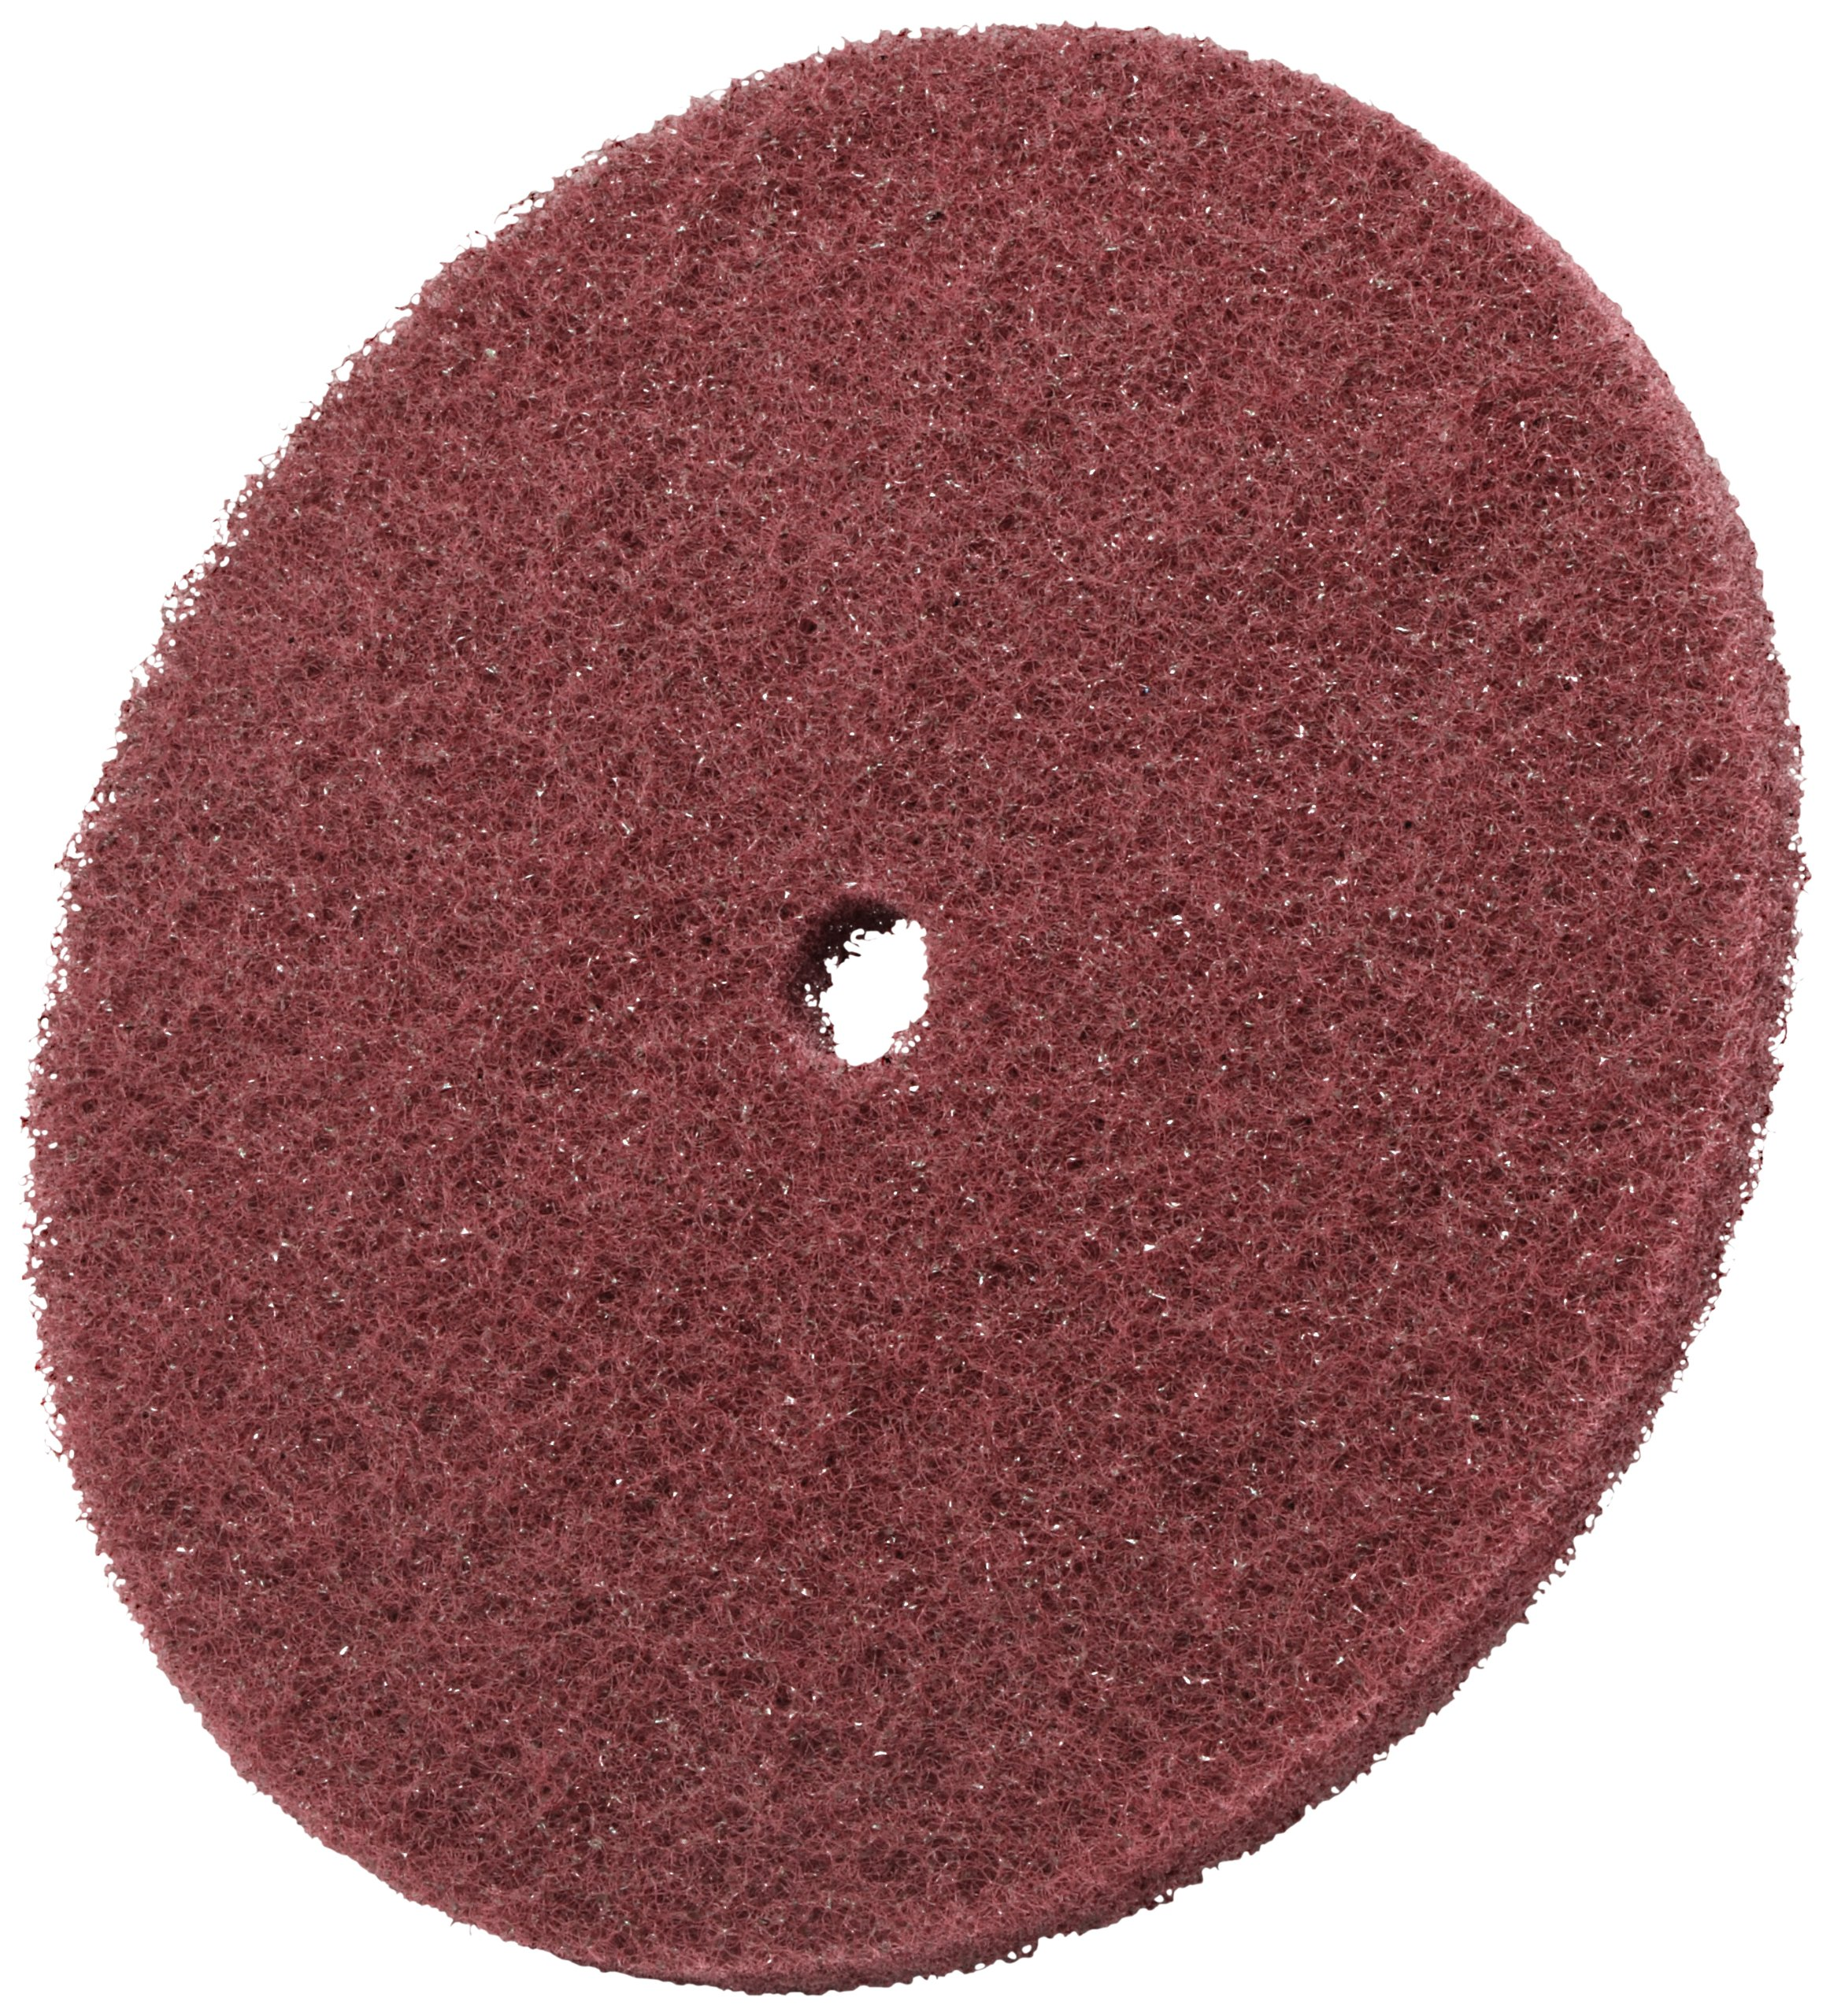 Scotch-Brite(TM) High Strength Disc, Aluminum Oxide, 4000rpm, 6 Diameter, 0.50 Arbor, A Very Fine   (Pack of 40) by Scotch-Brite